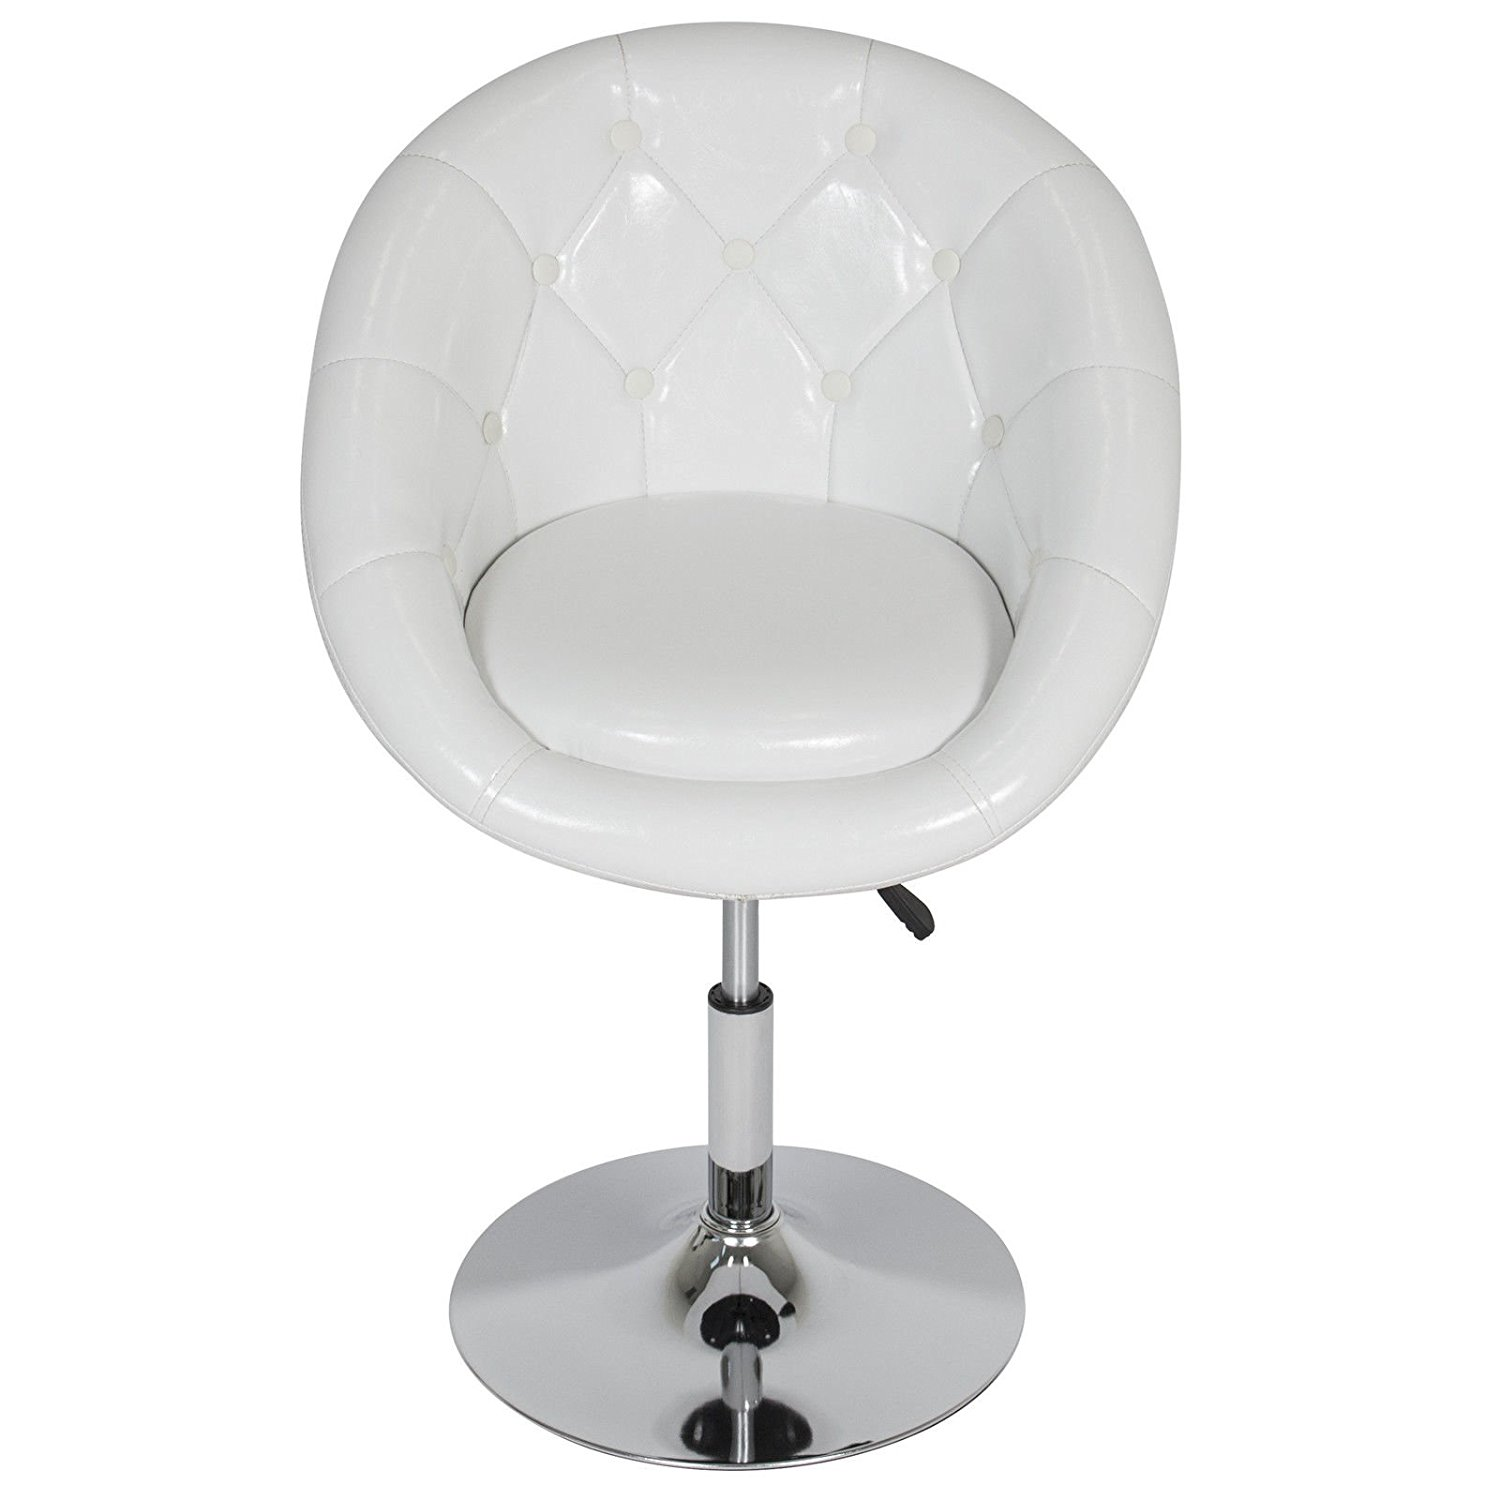 Awe Inspiring Buy Ltl 1Pc White Adjustable Modern Swivel Round Tufted Gmtry Best Dining Table And Chair Ideas Images Gmtryco